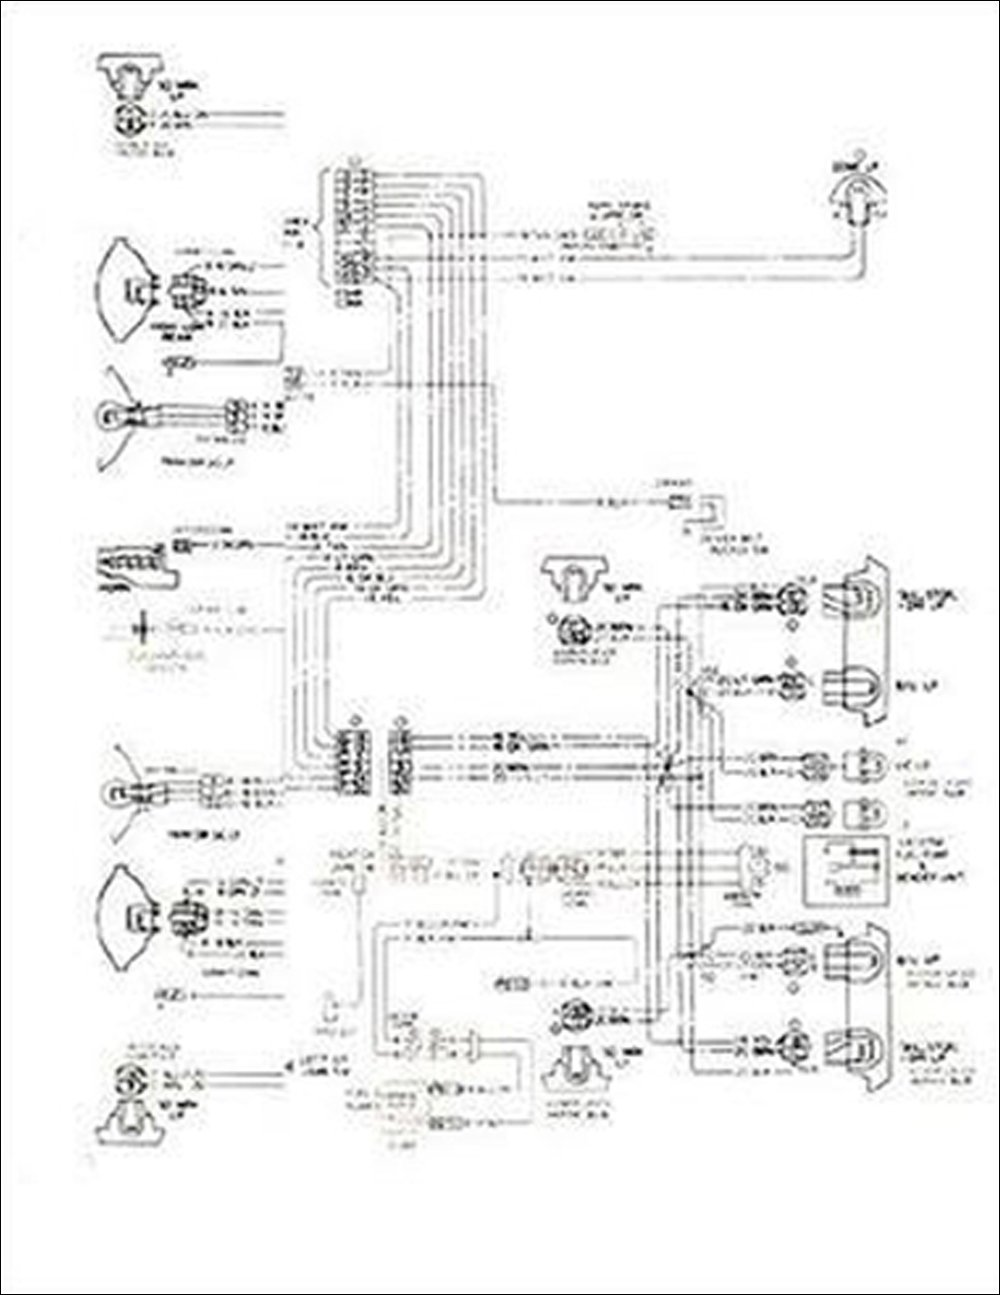 1977 camaro wiring diagrams - wiring diagram please-corsa-a -  please-corsa-a.pasticceriagele.it  pasticceriagele.it